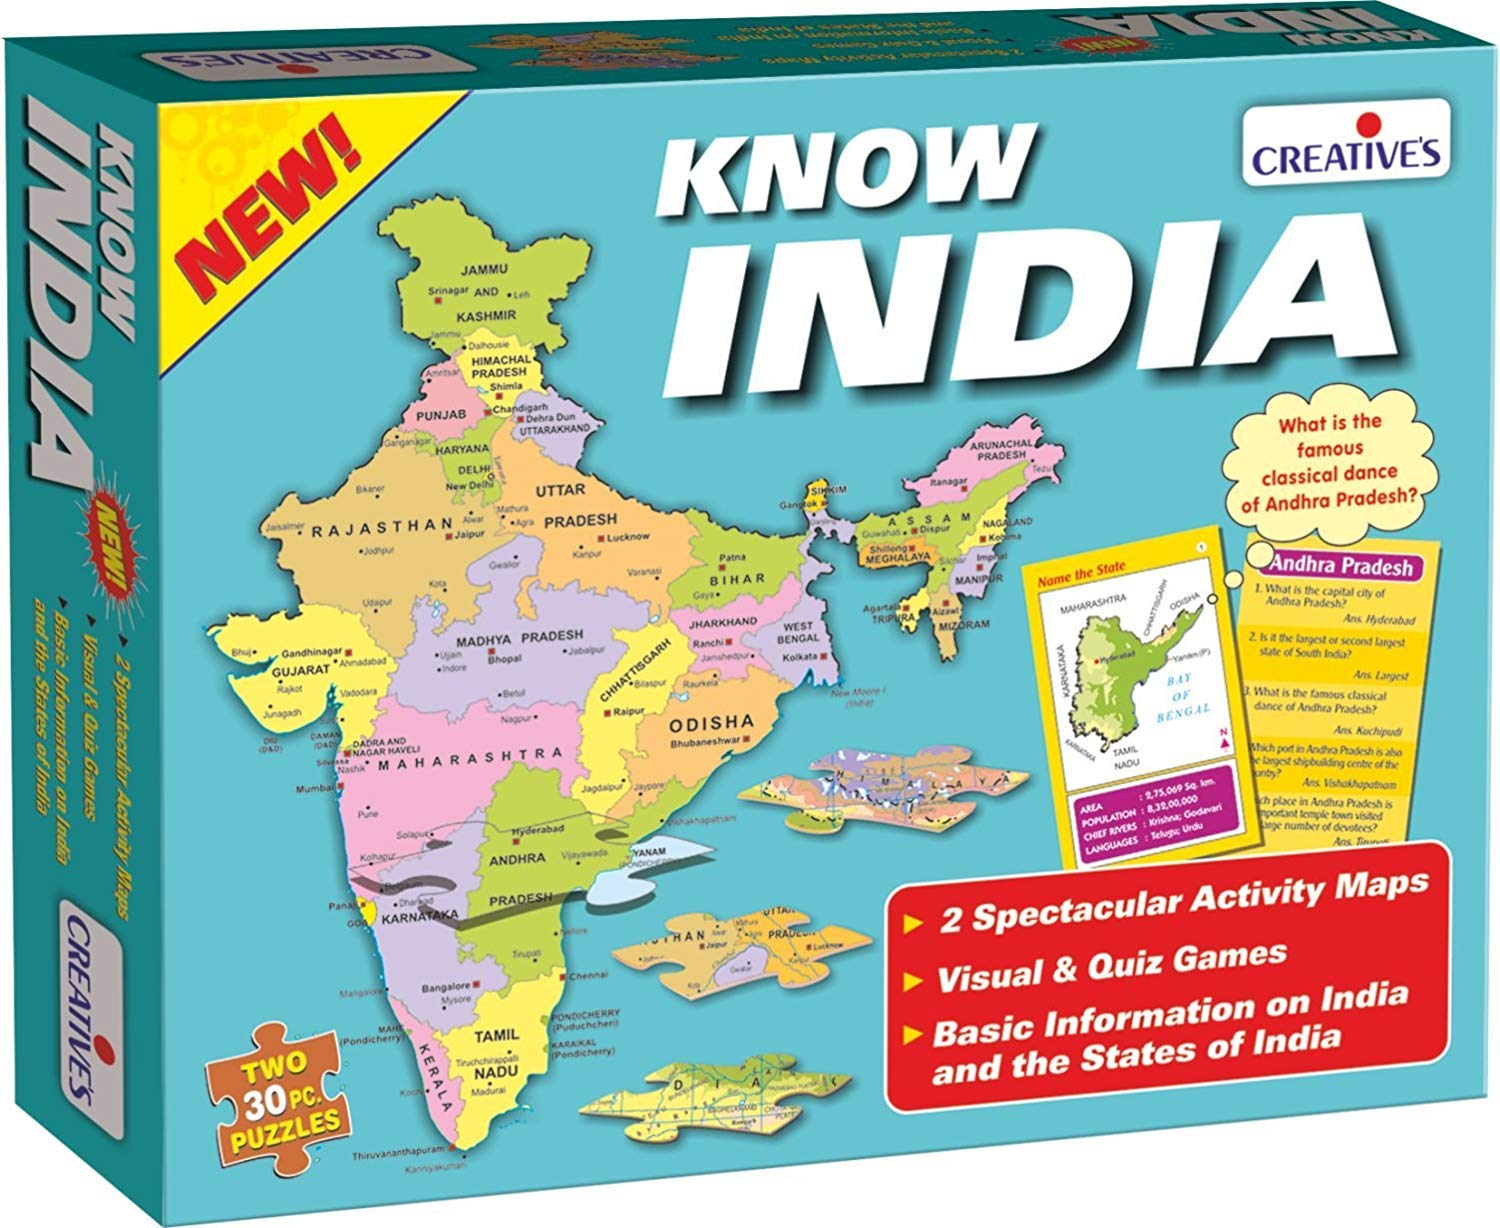 Buy creative educational aids p ltd know india online at low buy creative educational aids p ltd know india online at low prices in india amazon fandeluxe Gallery